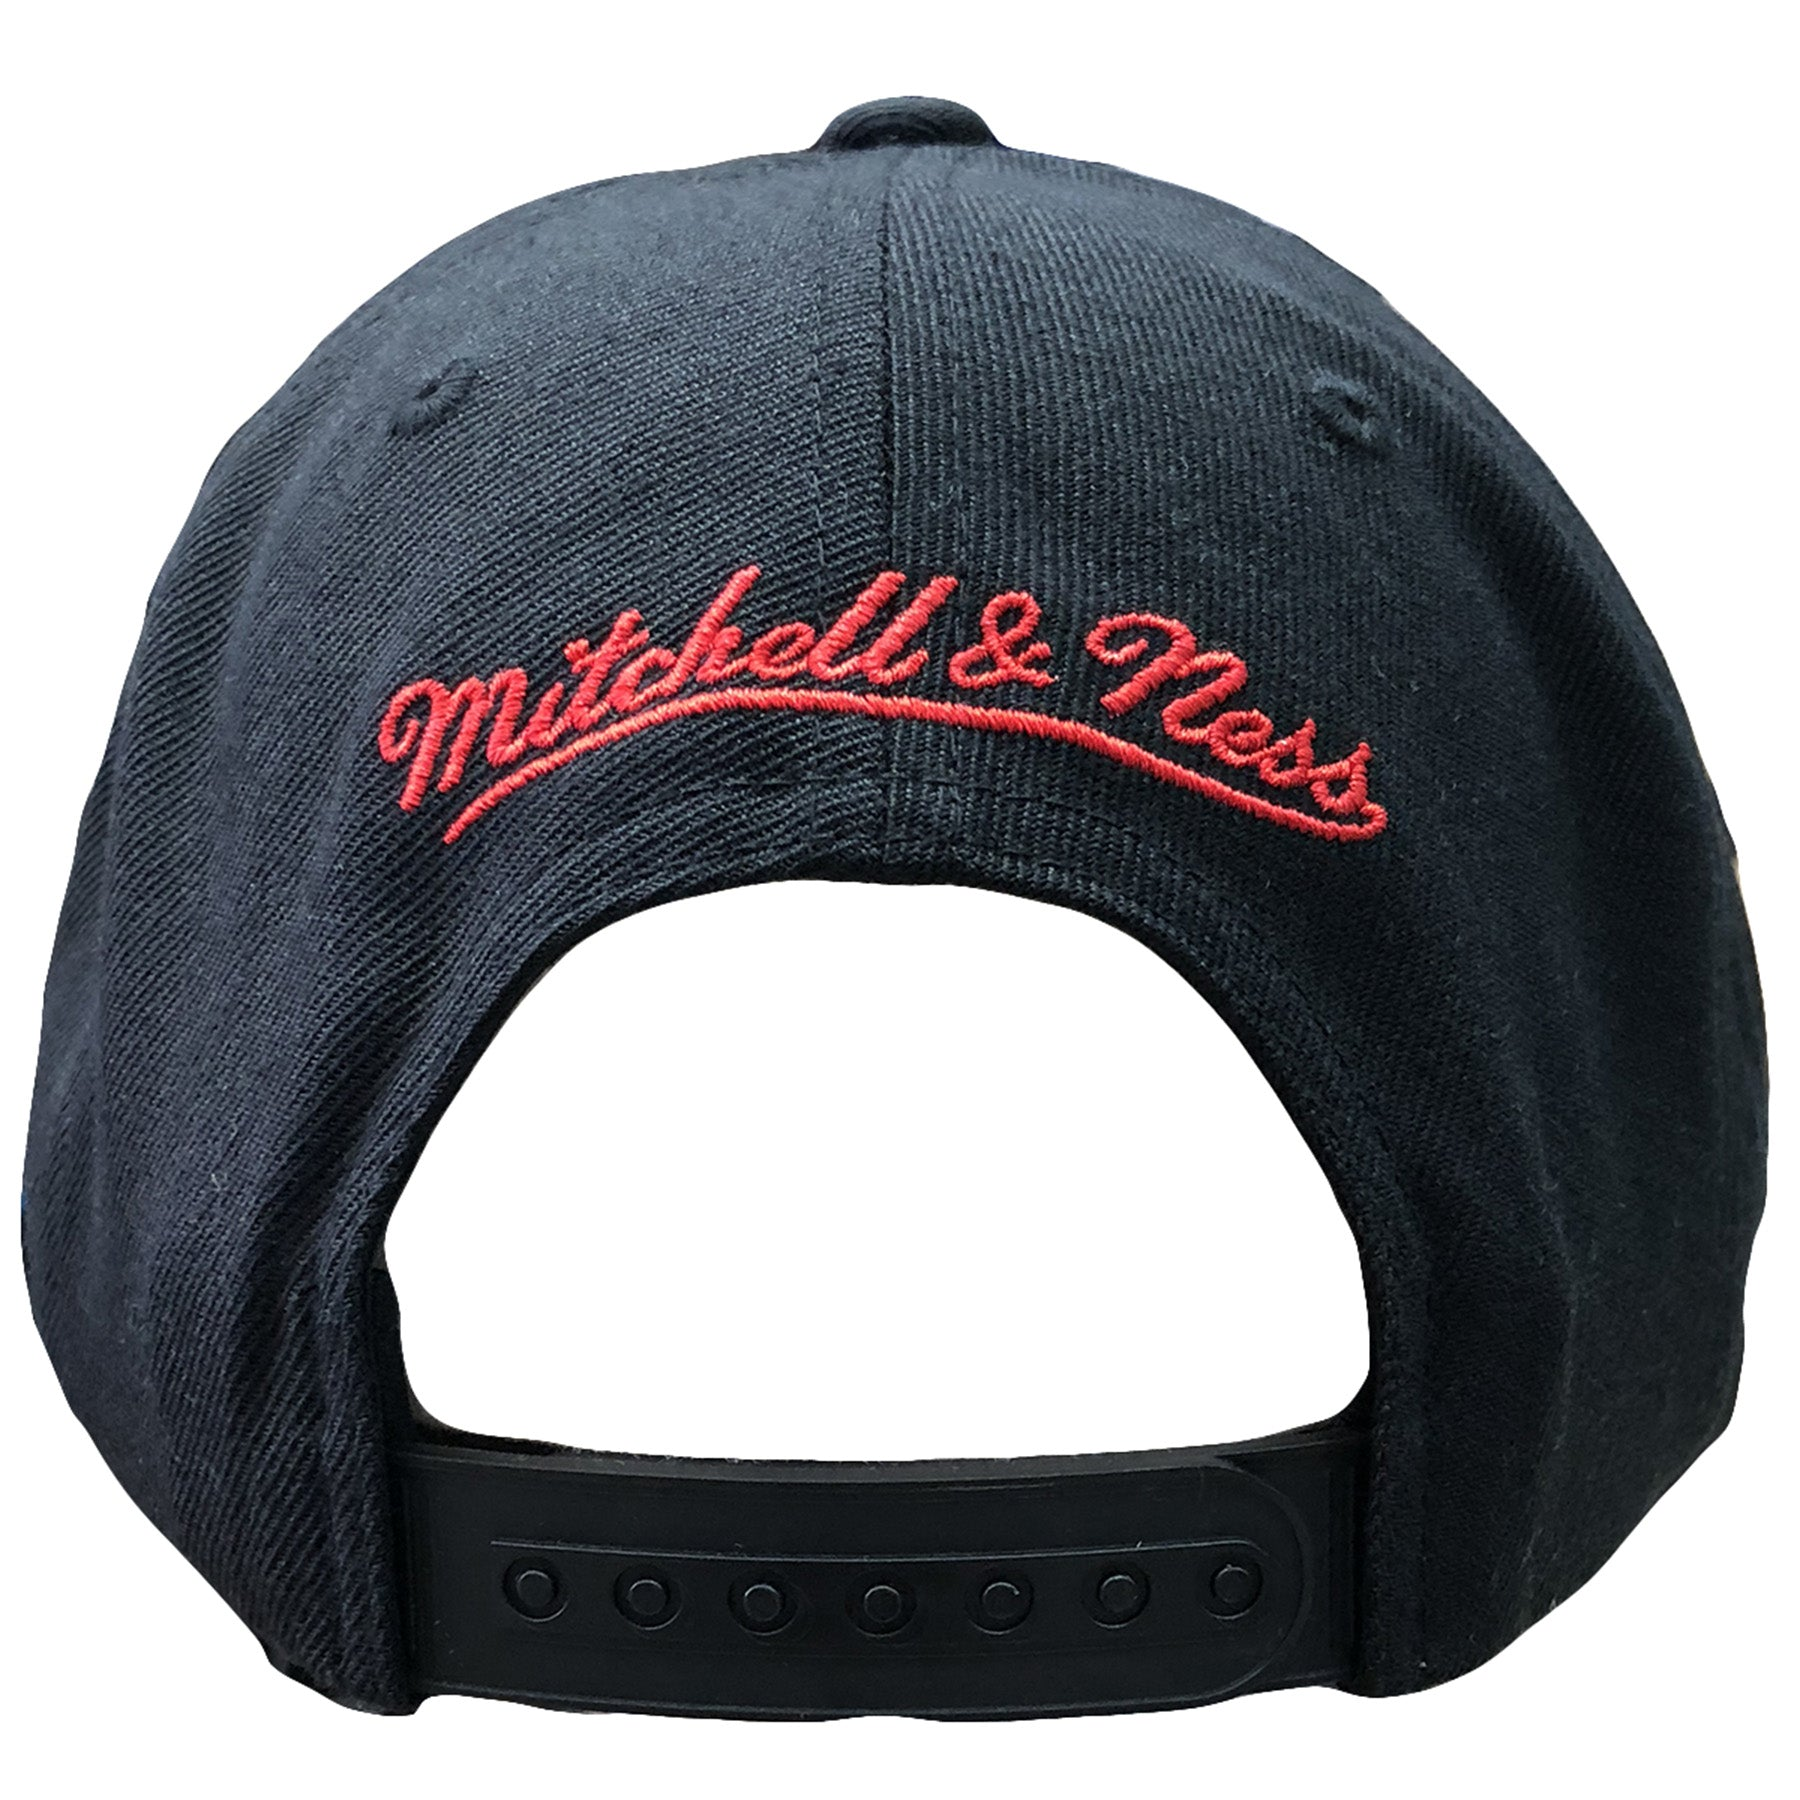 detailed pictures 264b2 7d736 ... germany the back of the portland trail blazers snapback hat has the  mitchell and ness logo